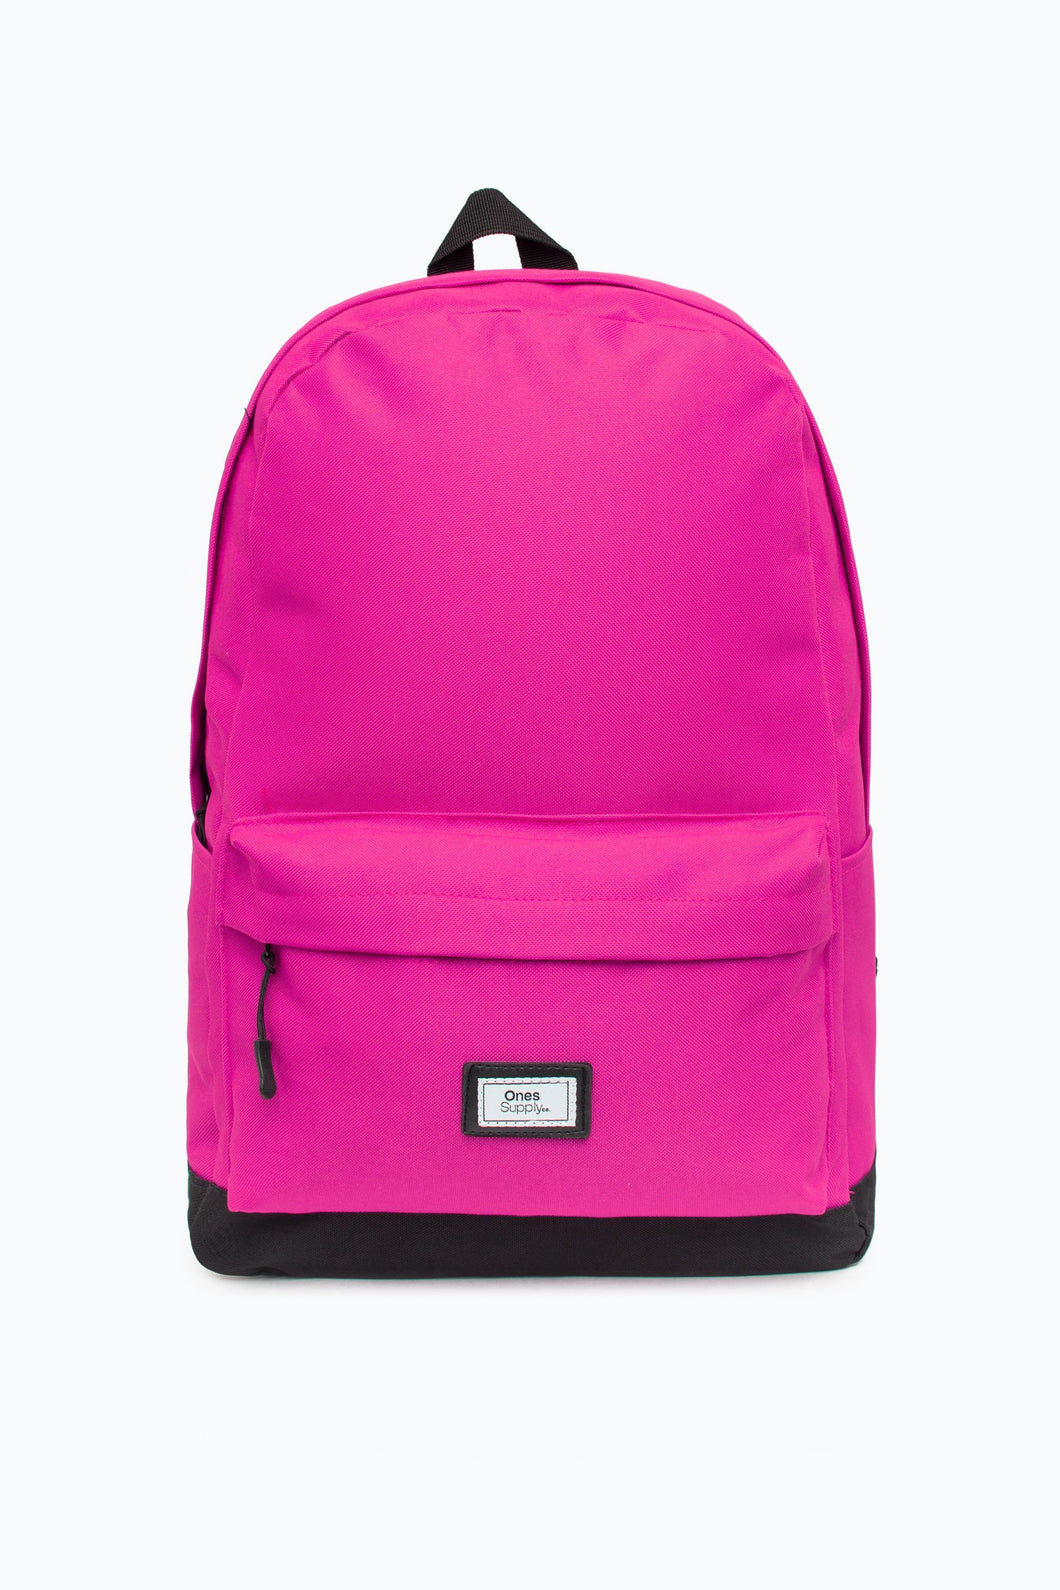 SOLID PINK CORE BACKPACK